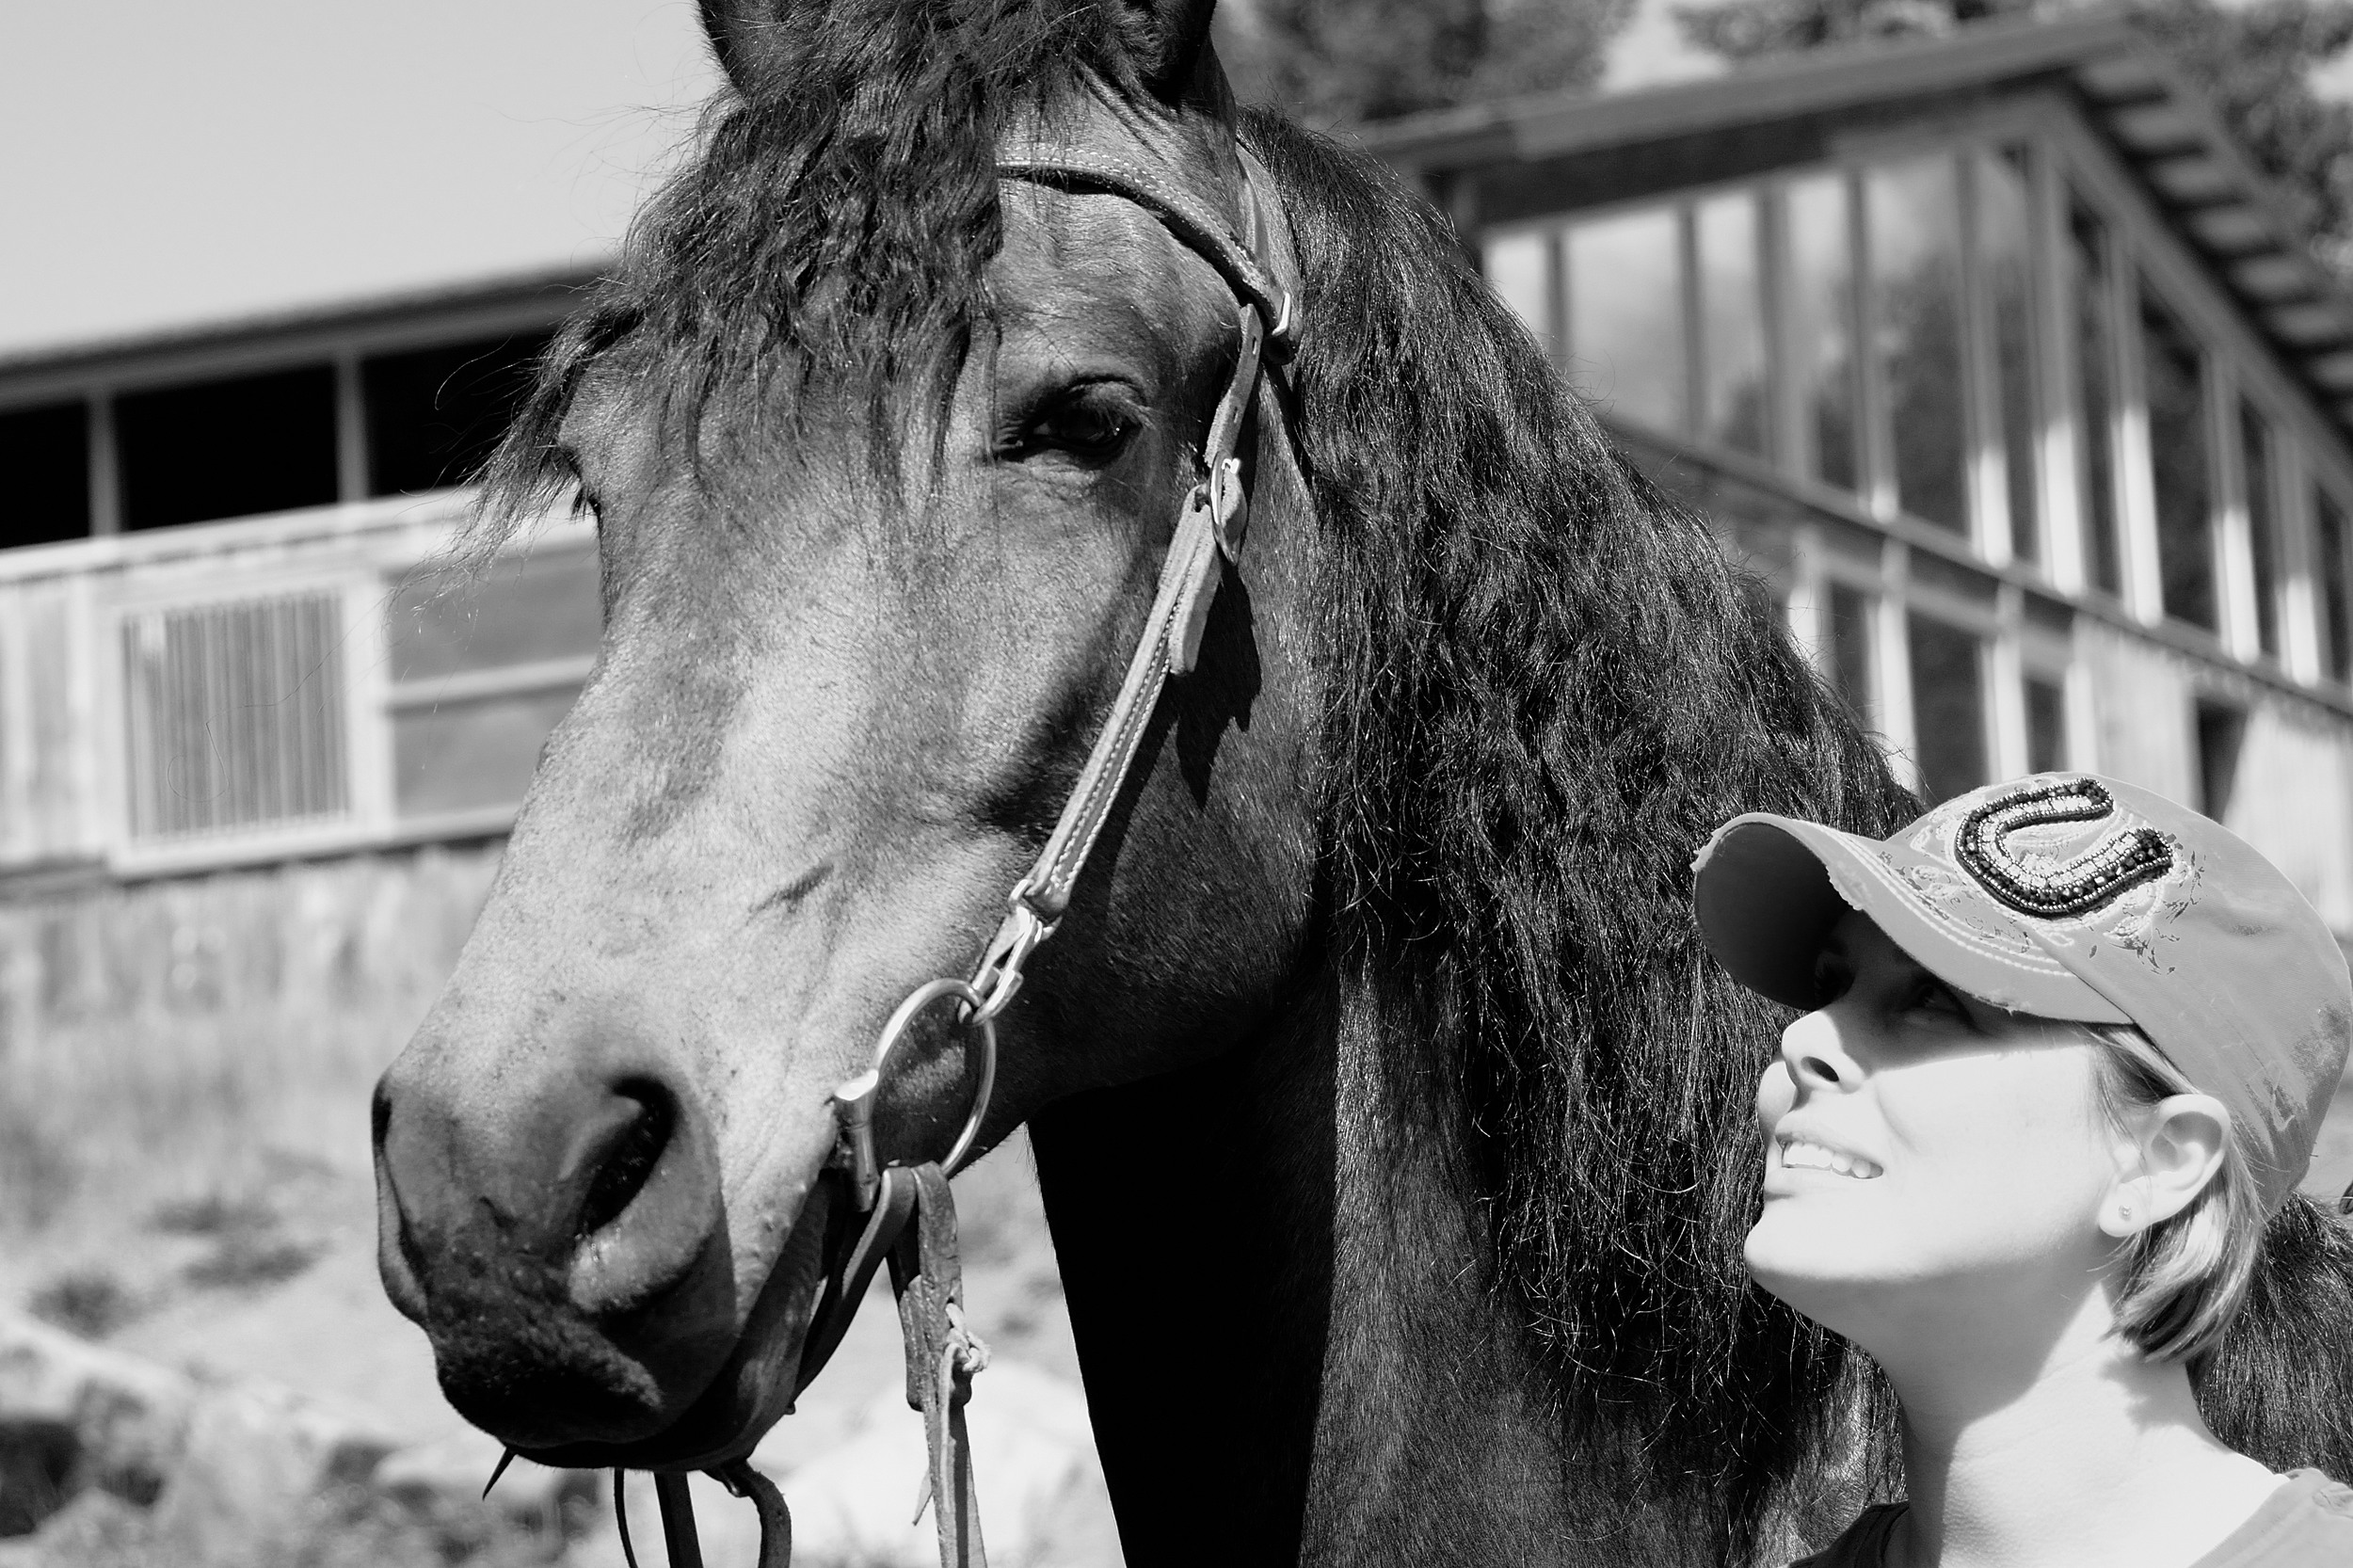 Me & my big moose, Cheli! :)  Photograph (above) taken by Dena Kent Photography ~ www.denakentphotography.com